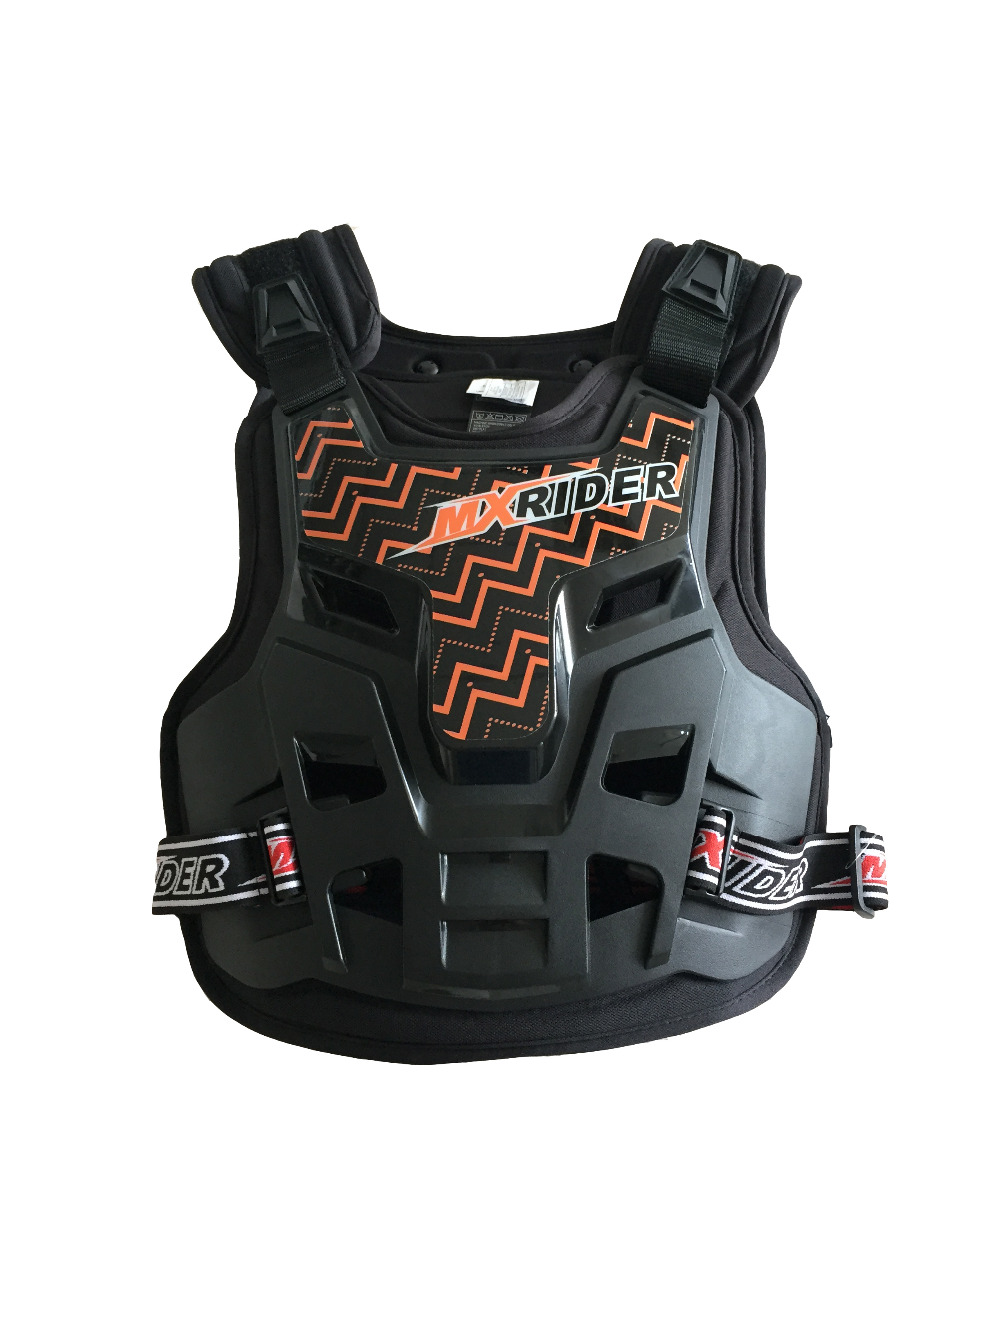 Motorcycles Motocross Chest Back Protector Armour Vest Racing Protective Body-Guard MX armor ATV Guards Race armor guard комплект roca meridian 346248000 унитаз инсталляция grohe 38721001 кнопка хром